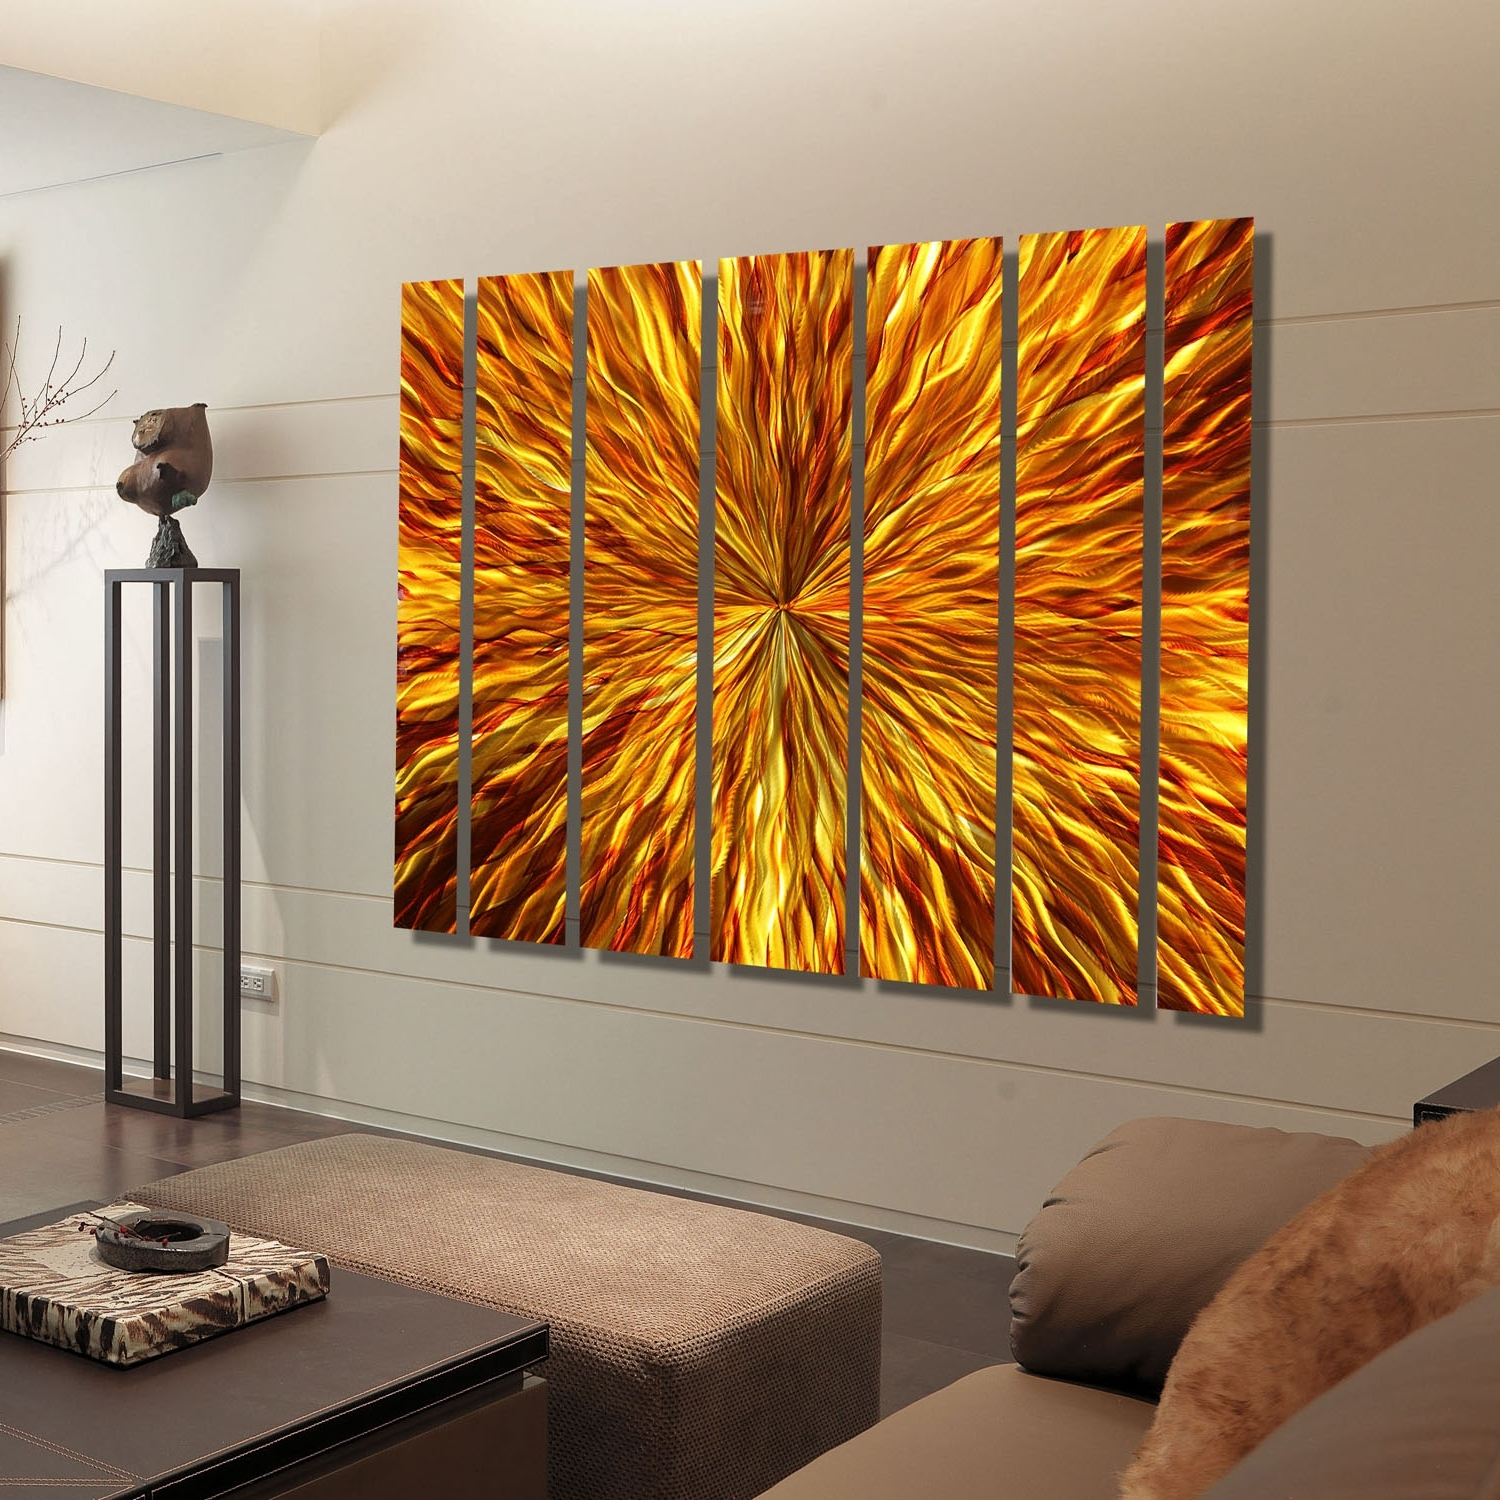 Abstract Metal Wall Art Pertaining To Preferred Amber Vortex Xl – Extra Large Modern Metal Wall Artjon Allen (View 7 of 15)